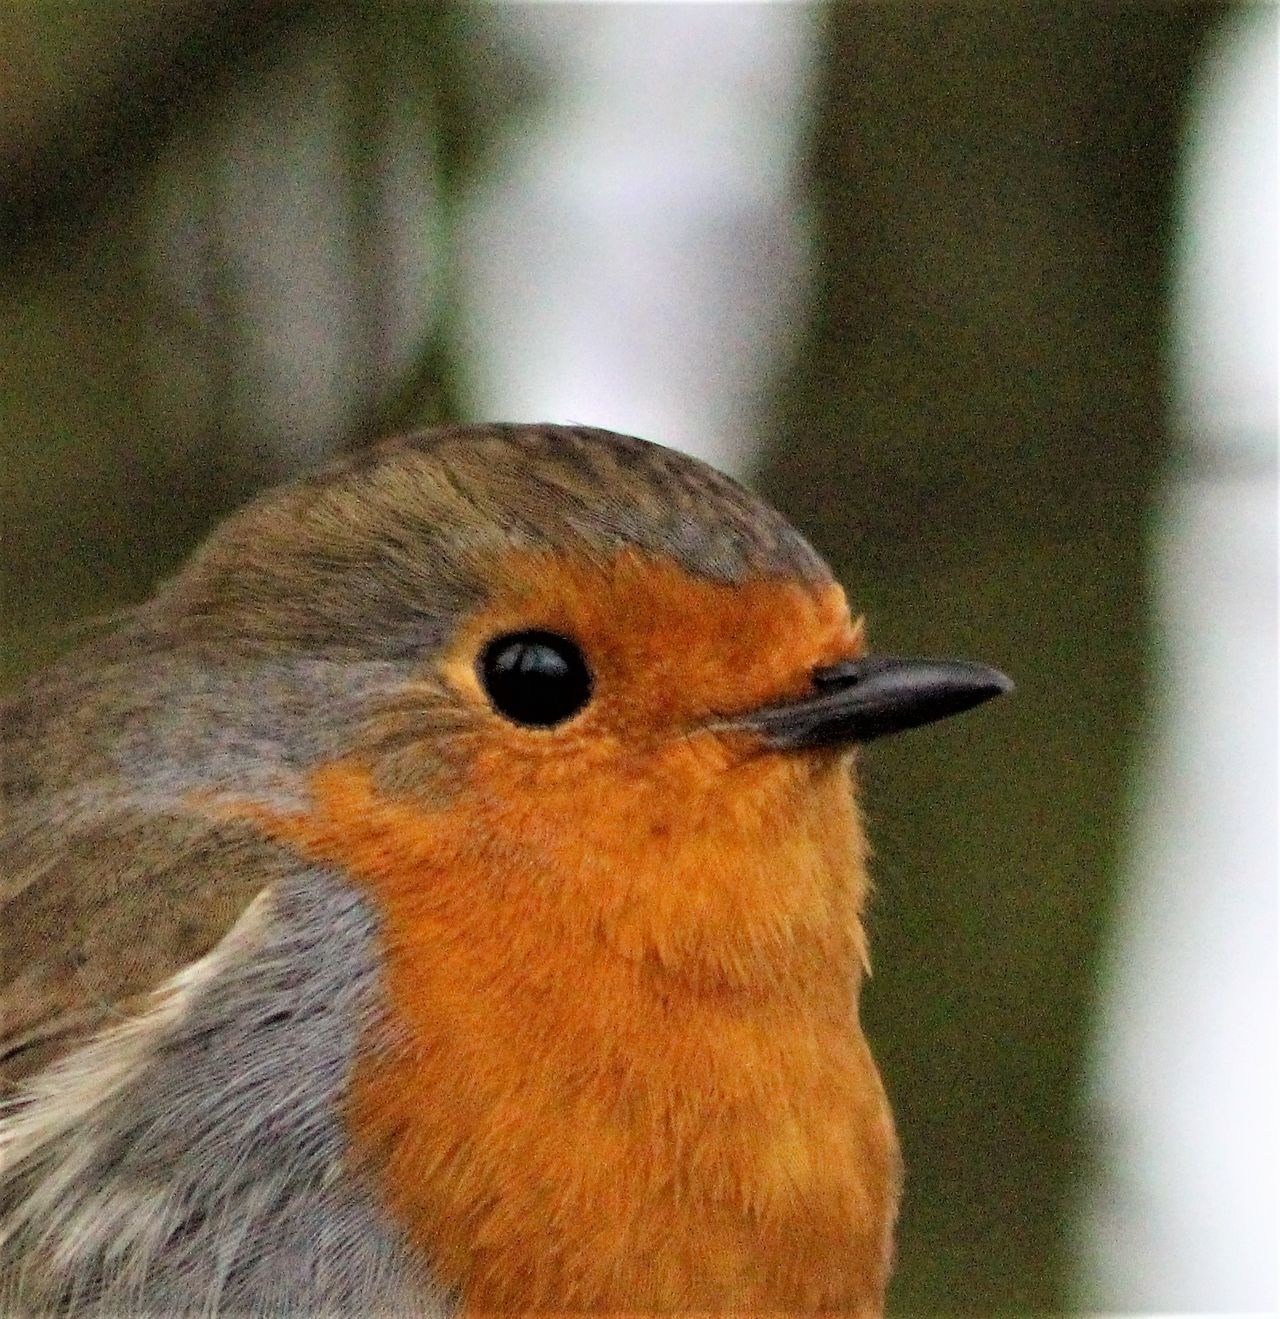 Animals In The Wild Bird Bright Eyes Close Up Close-up Portrait Robin Tame